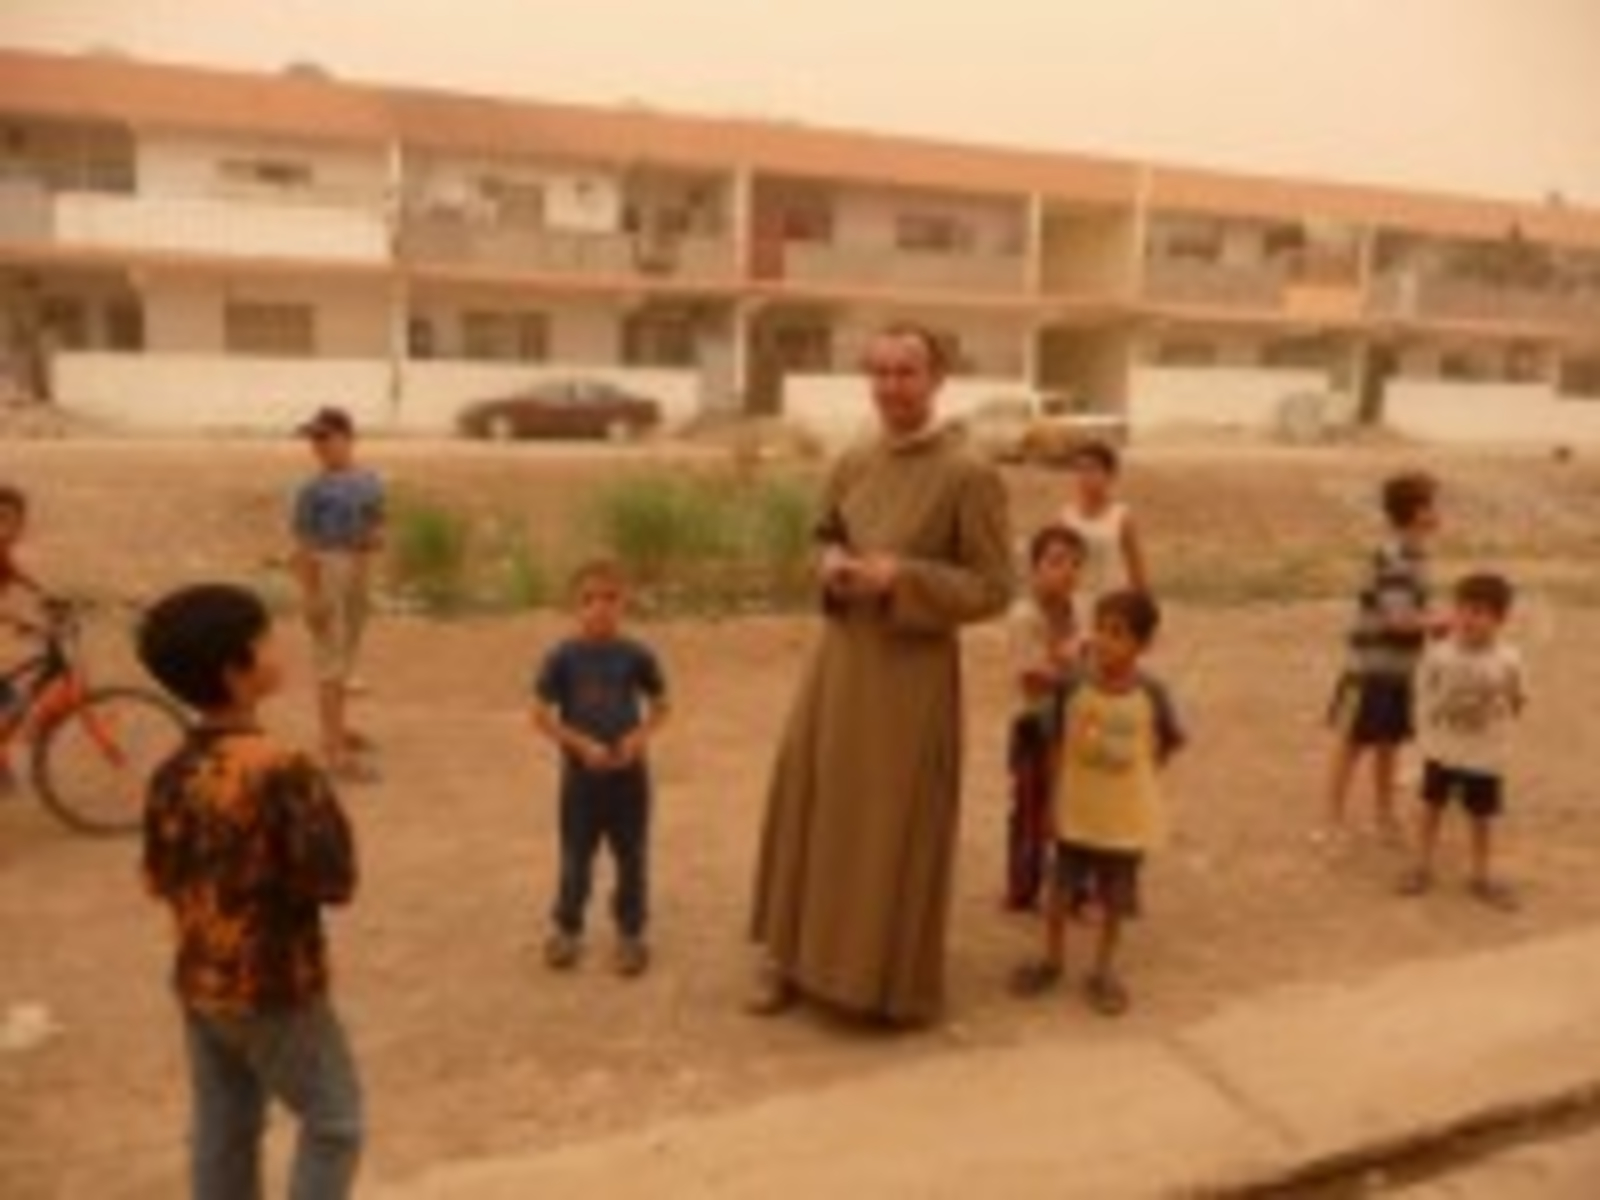 iraq_christians-in-qaraqosh-nineveh-plain-acn-200-x-150